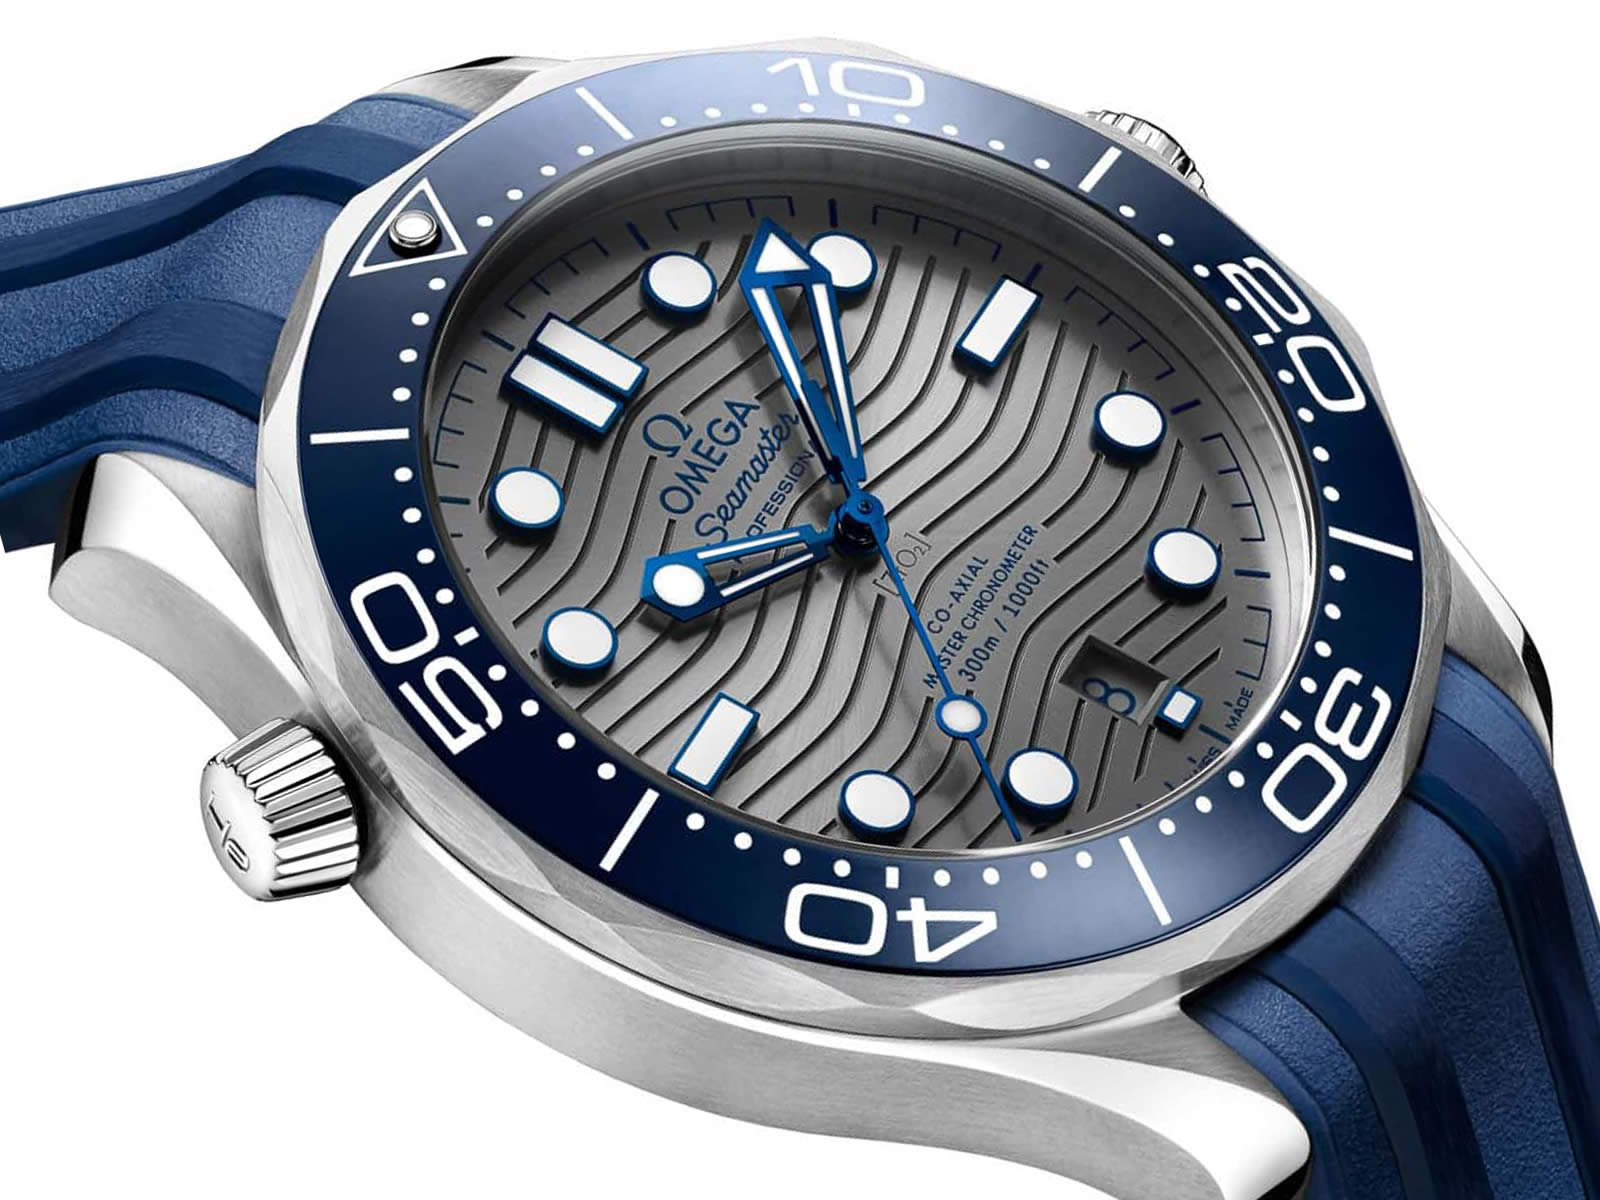 210-32-42-20-06-001-omega-seamaster-diver-300m-collection-2-.jpg